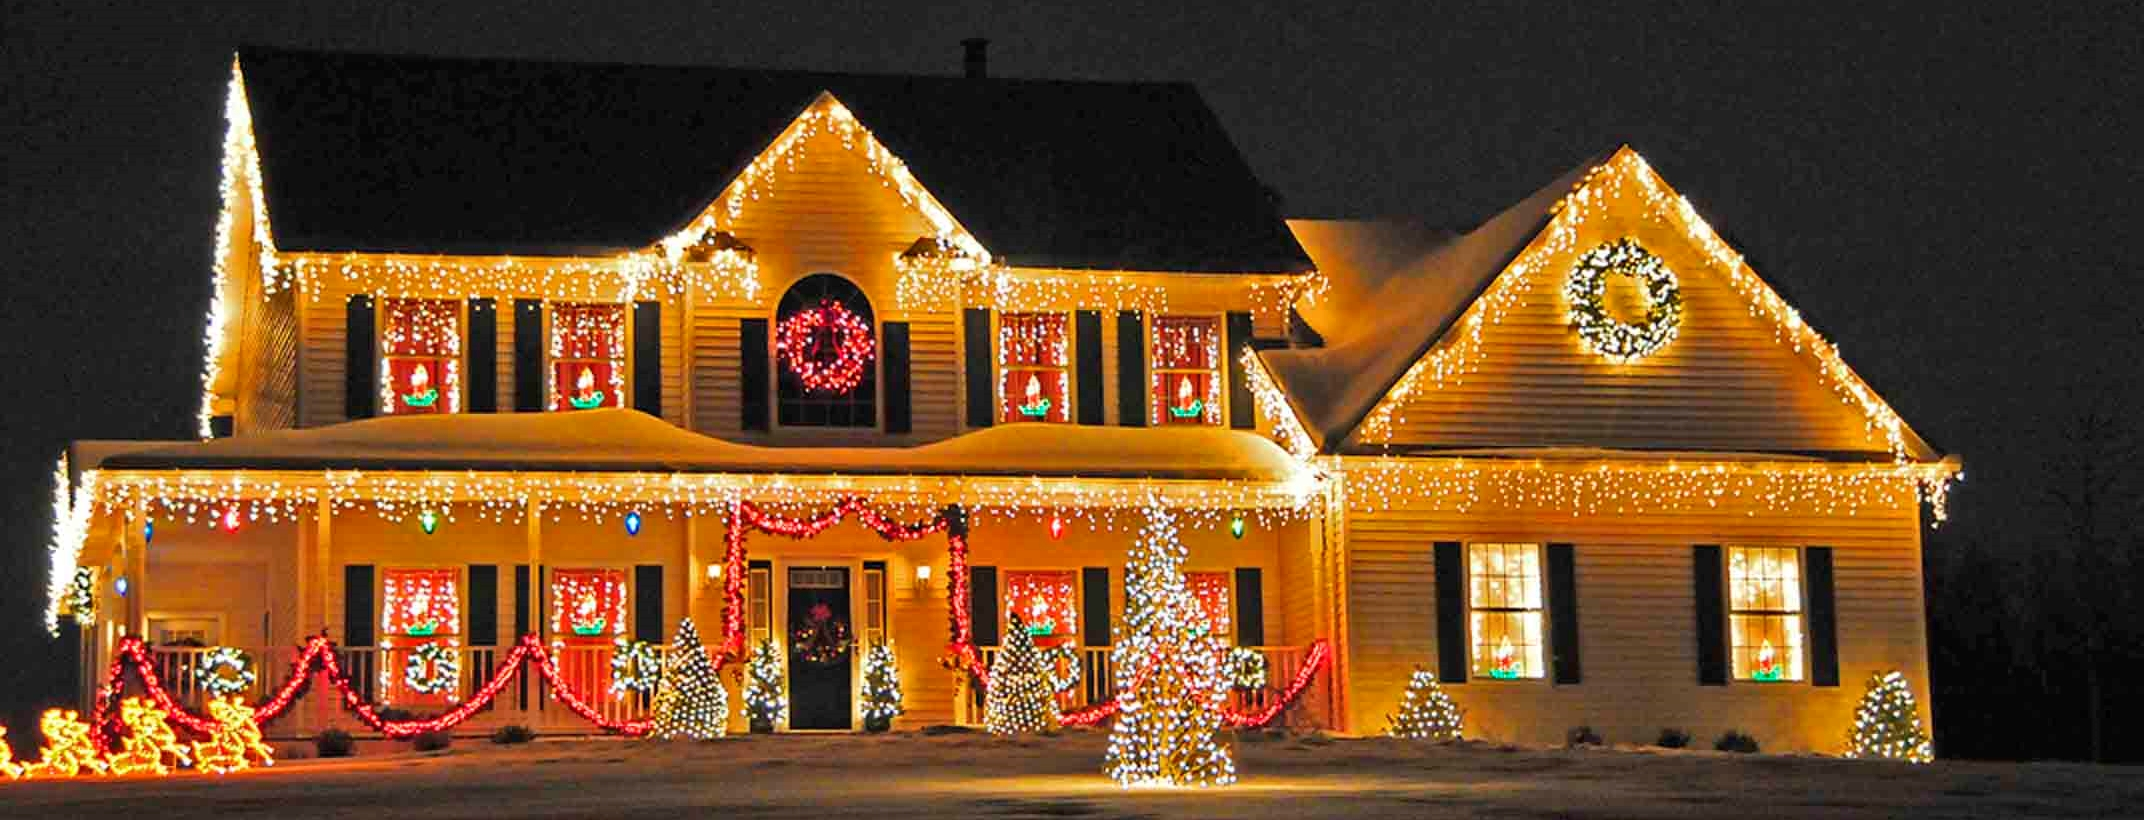 Choosing a Christmas Lights Installation Service ...